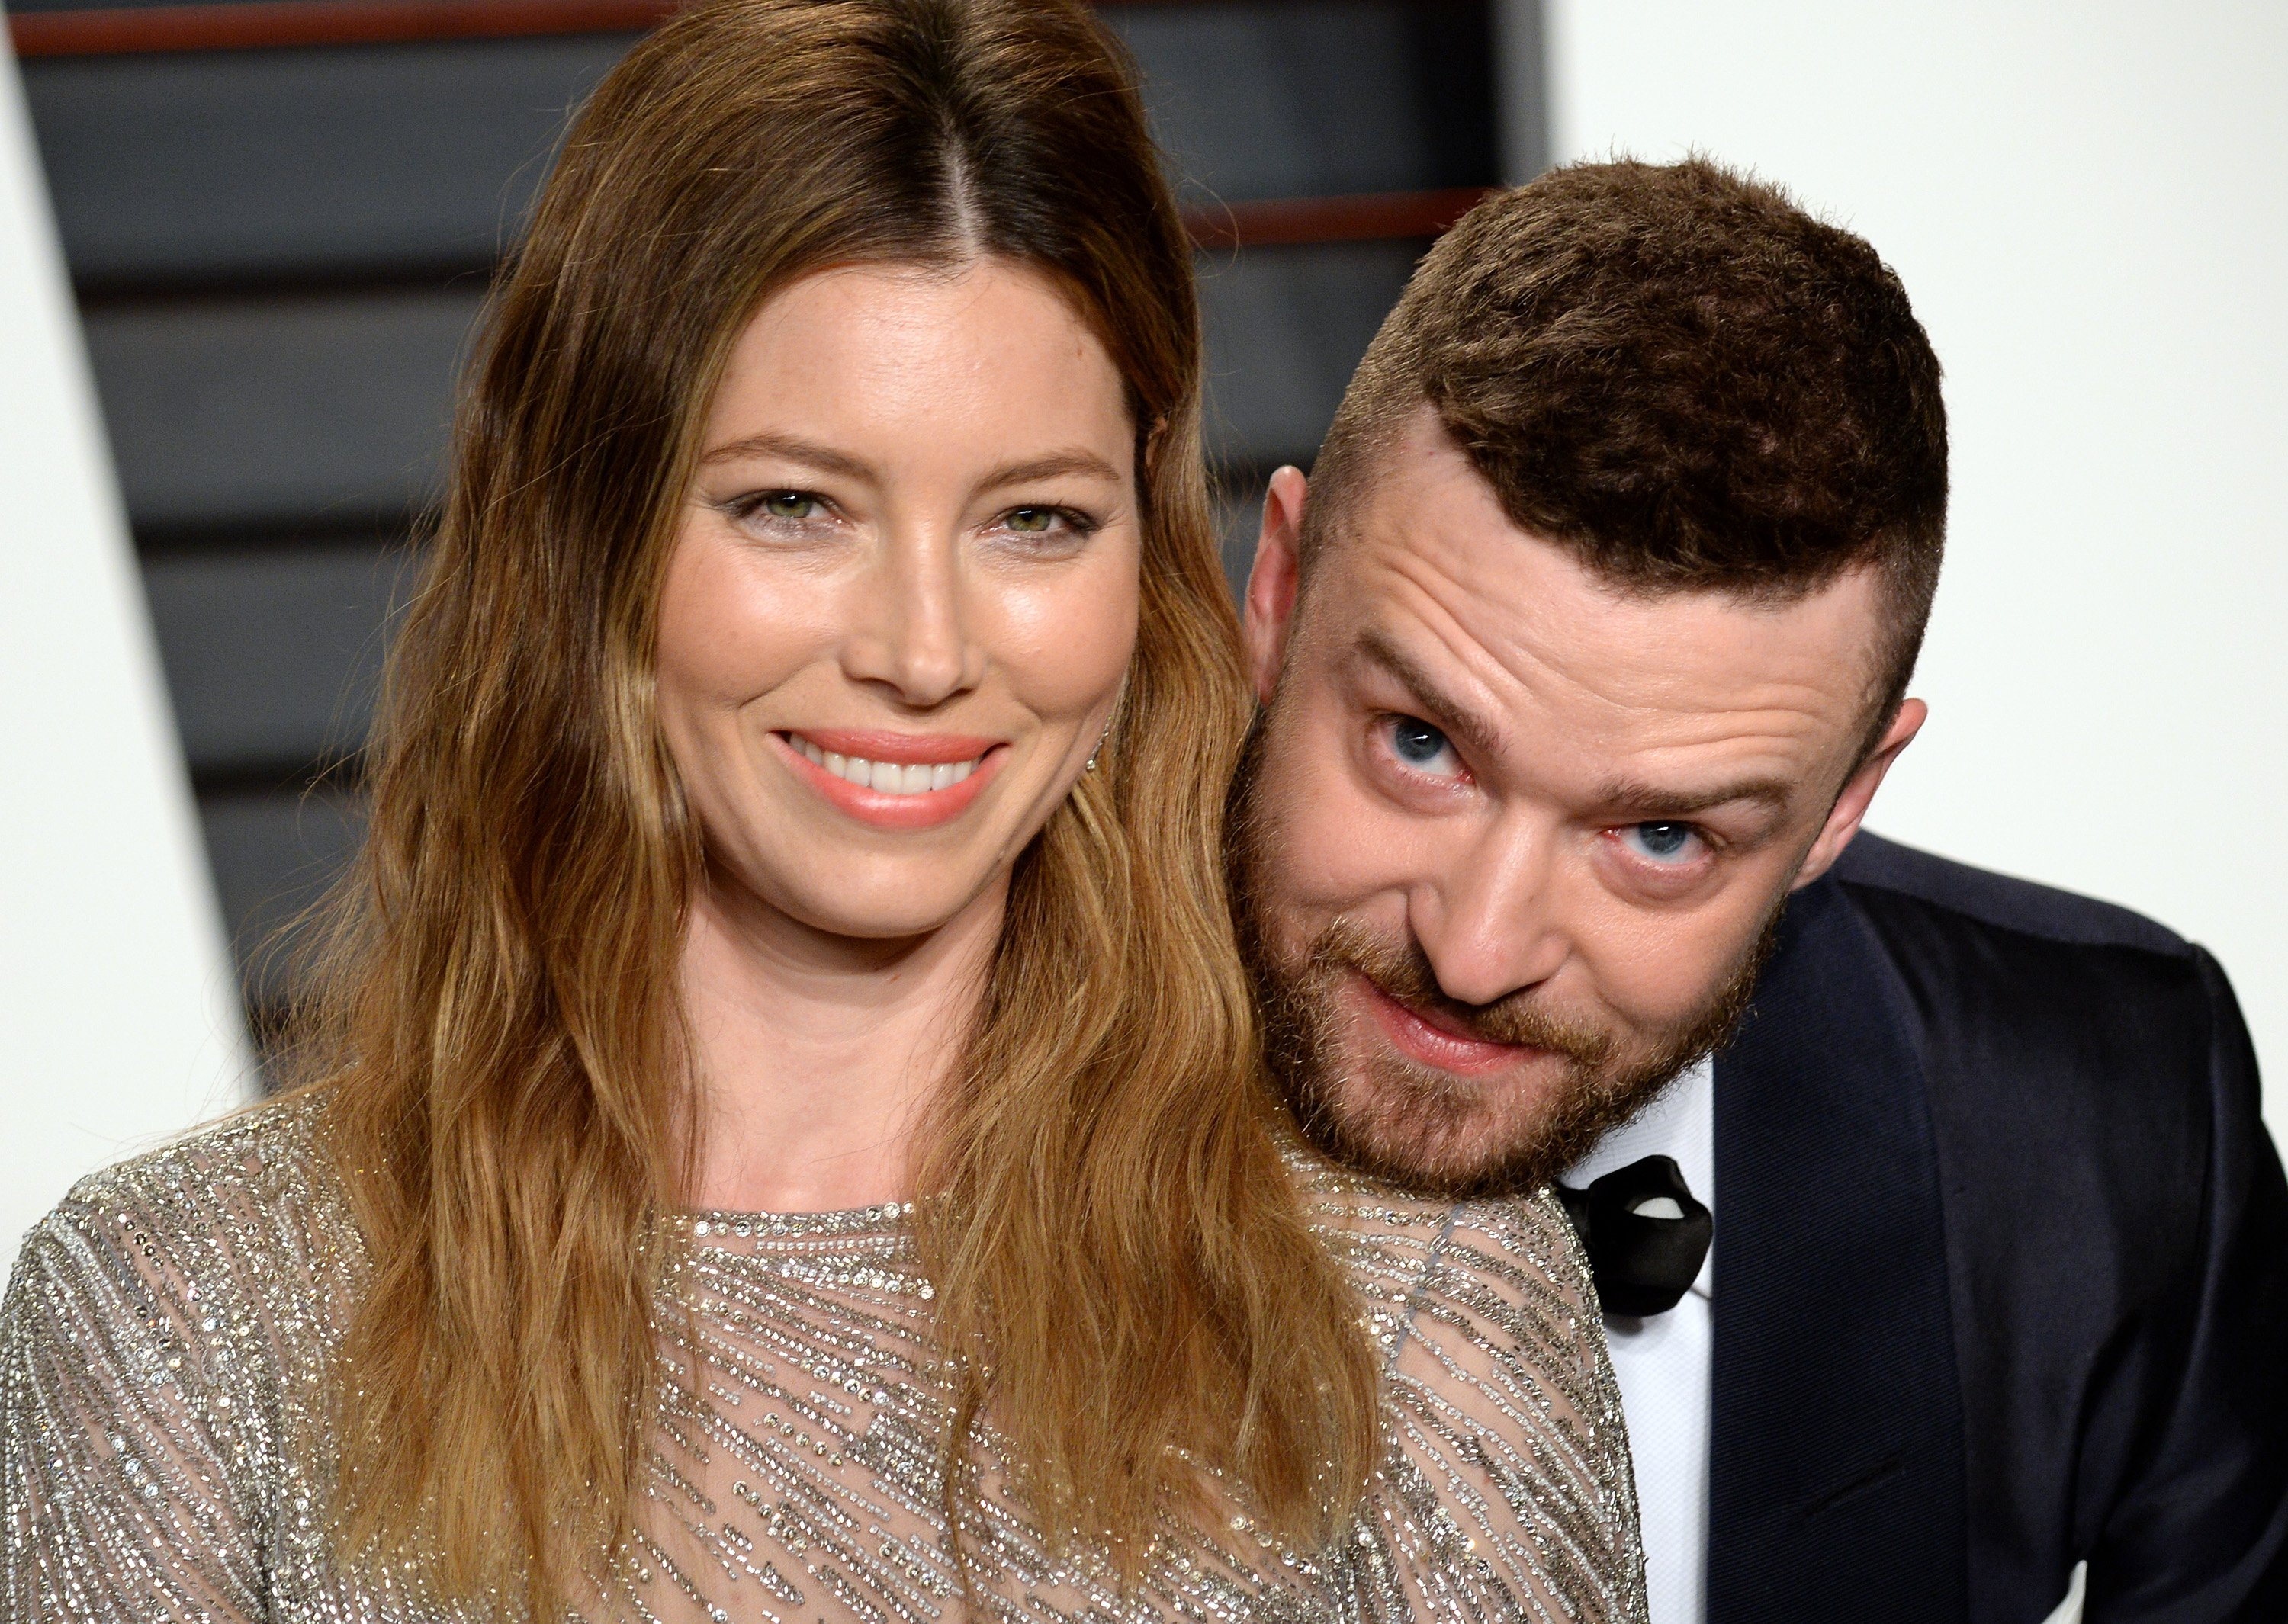 Jessica Biel and Justin Timberlake attend the 2016 Vanity Fair Oscar Party on February 28, 2016, in Beverly Hills, California. | Source: Getty Images.